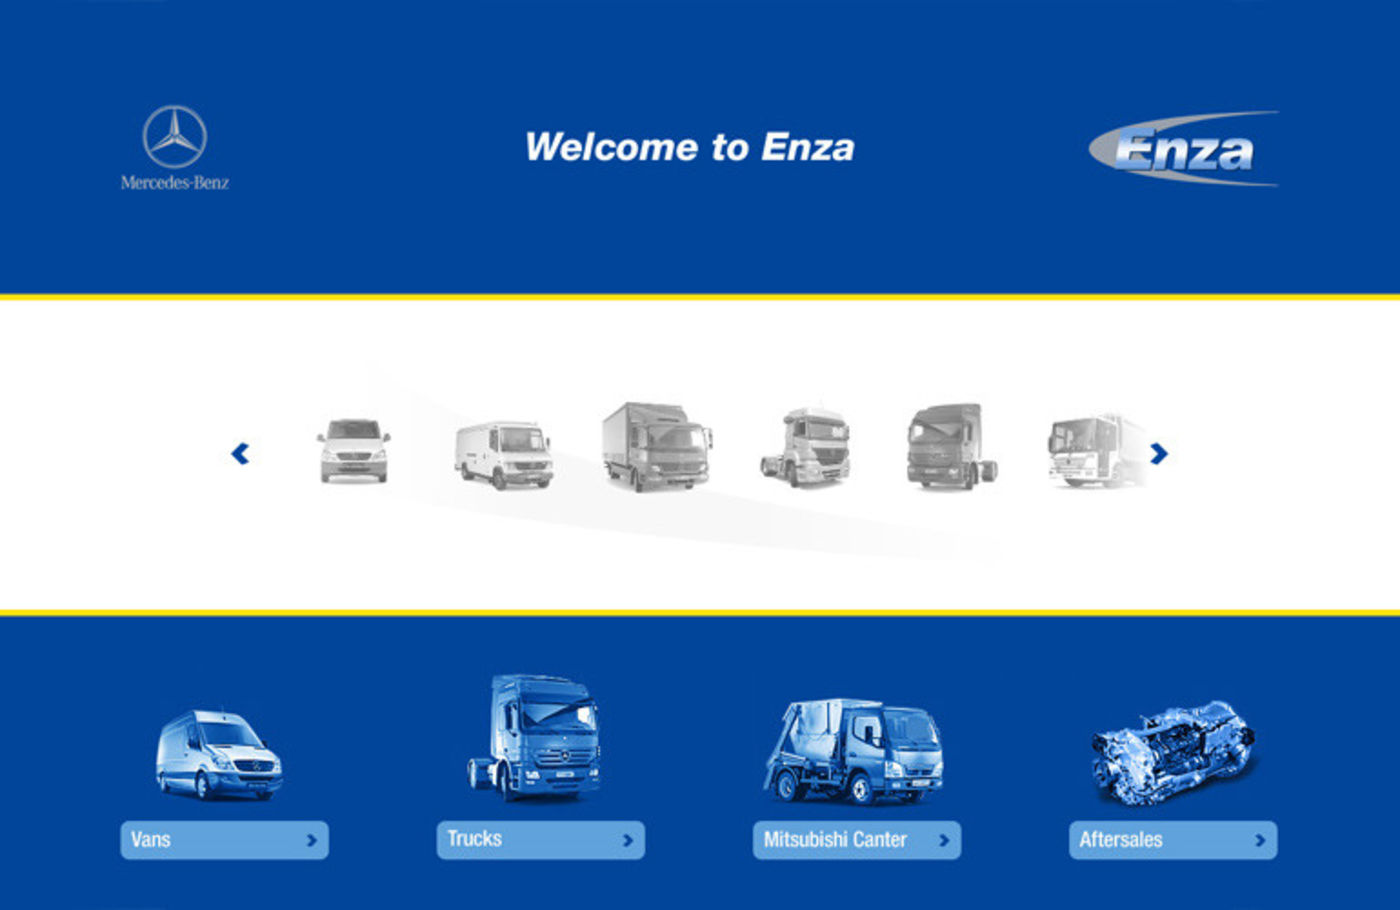 Enza Motors Homepage - Enza Motors